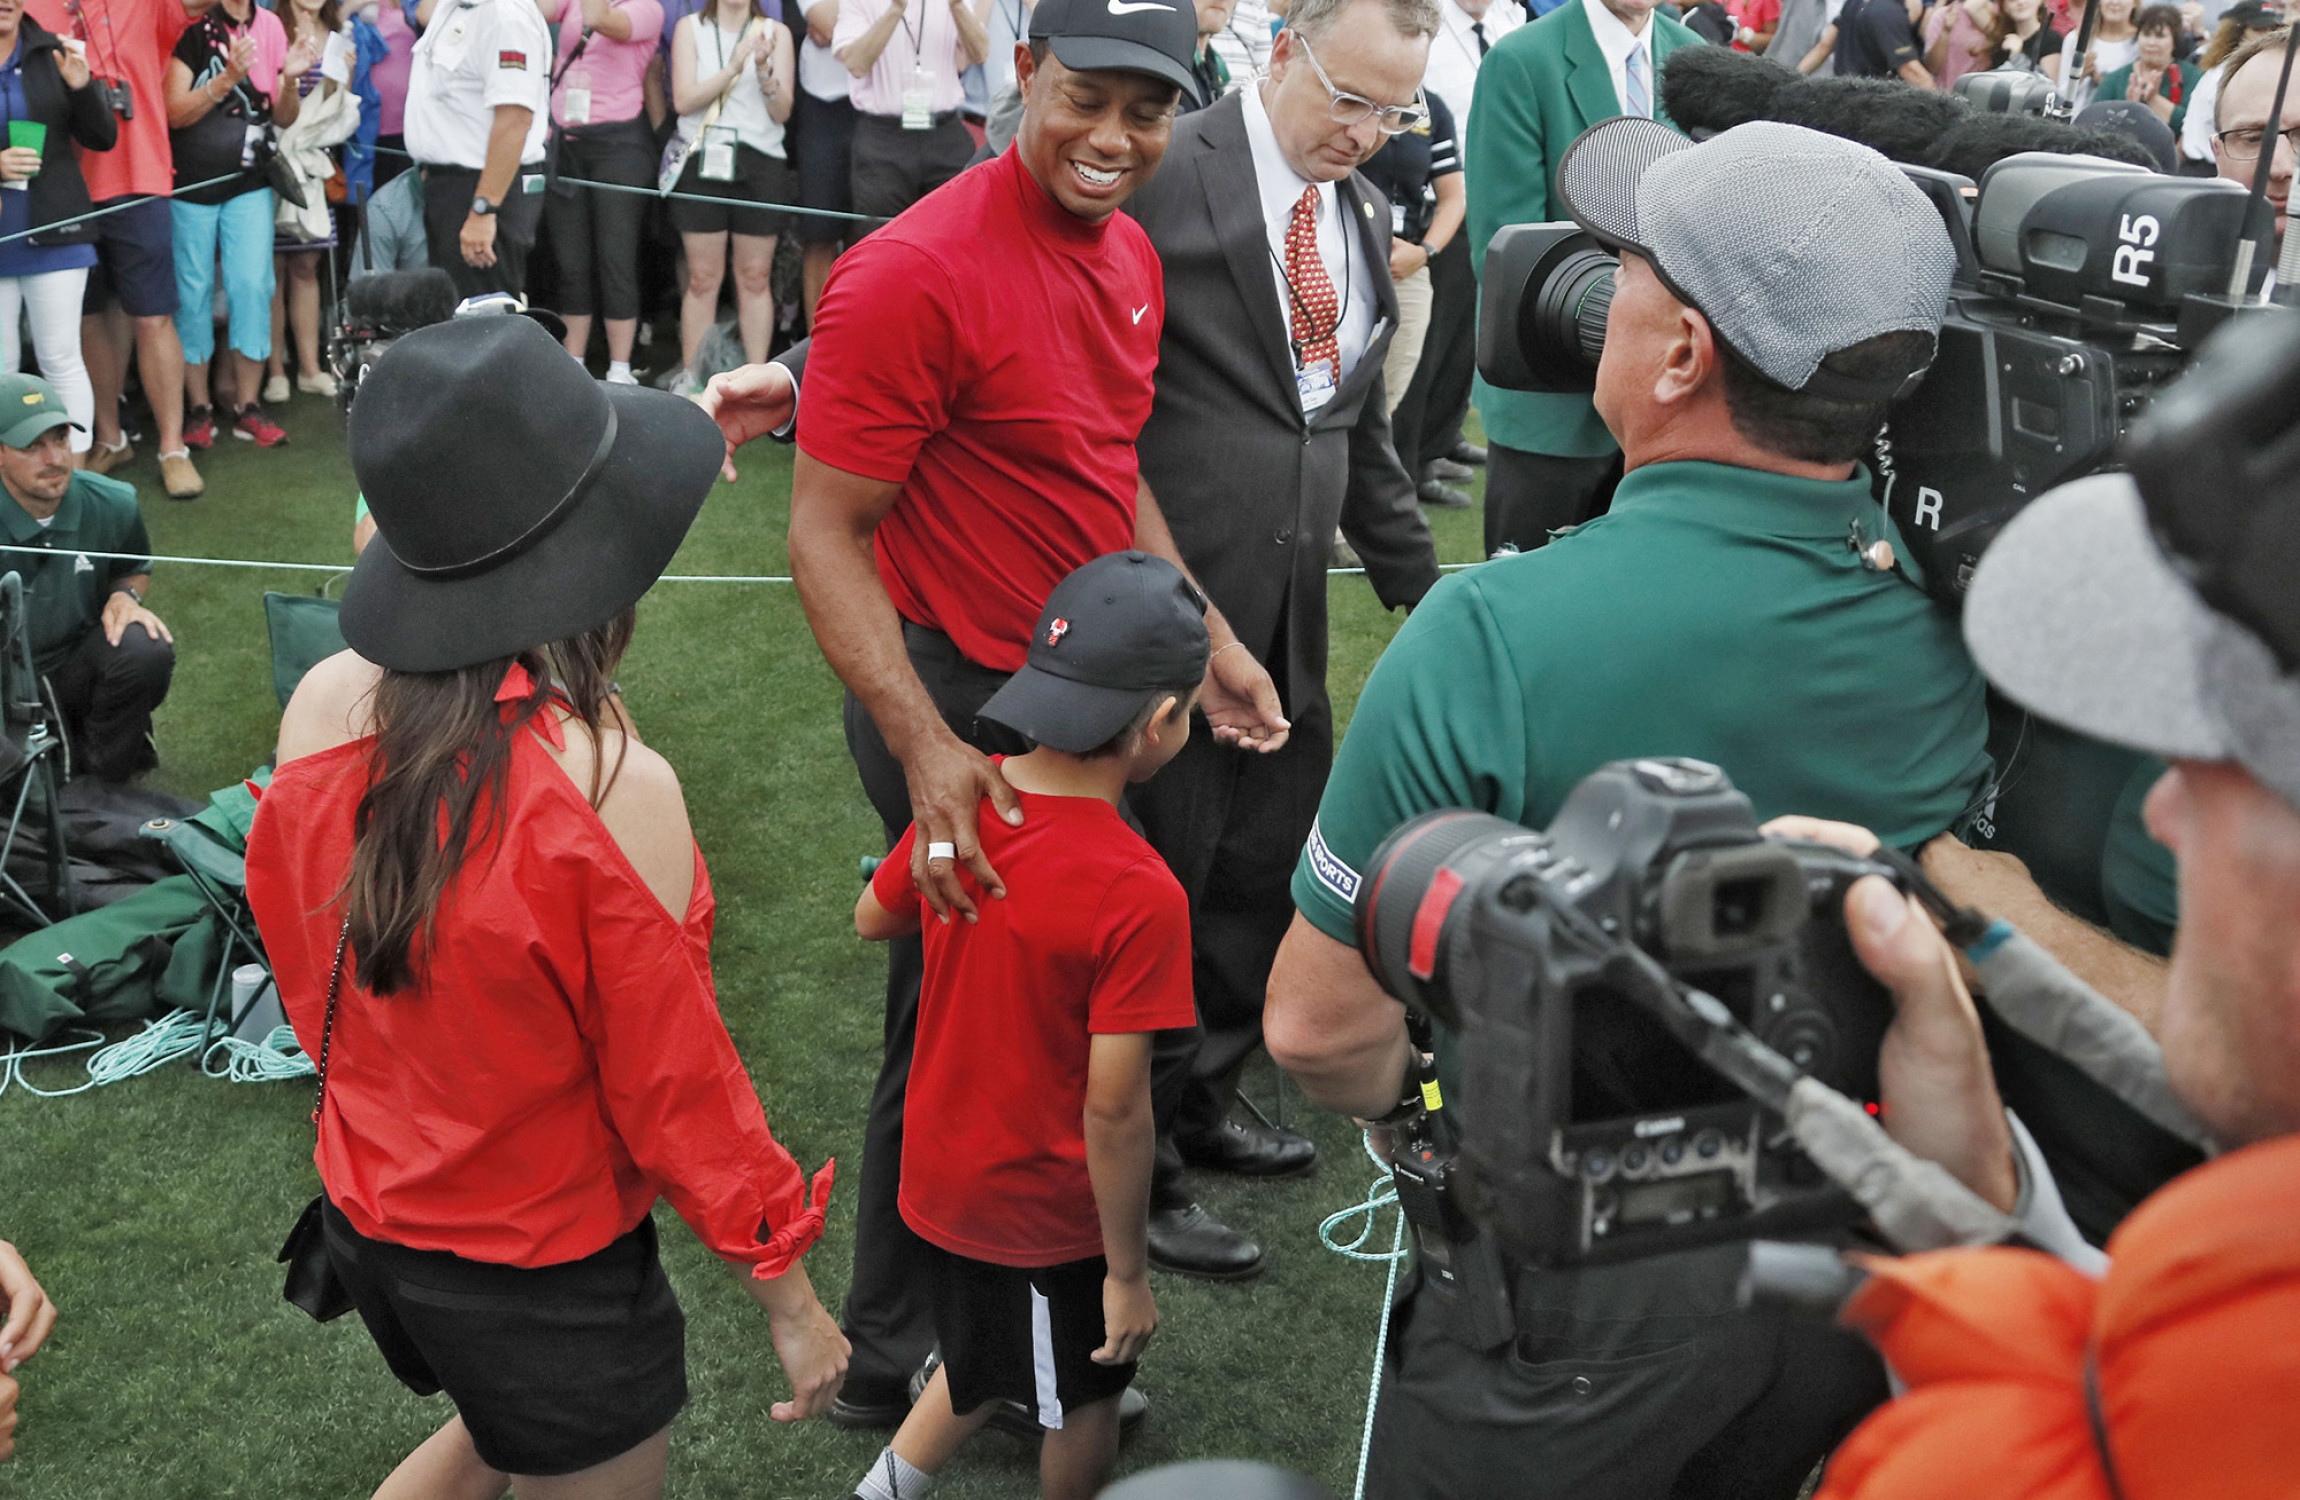 woods not thinking about 18 as nicklaus says   u0026 39 i u0026 39 m shaking